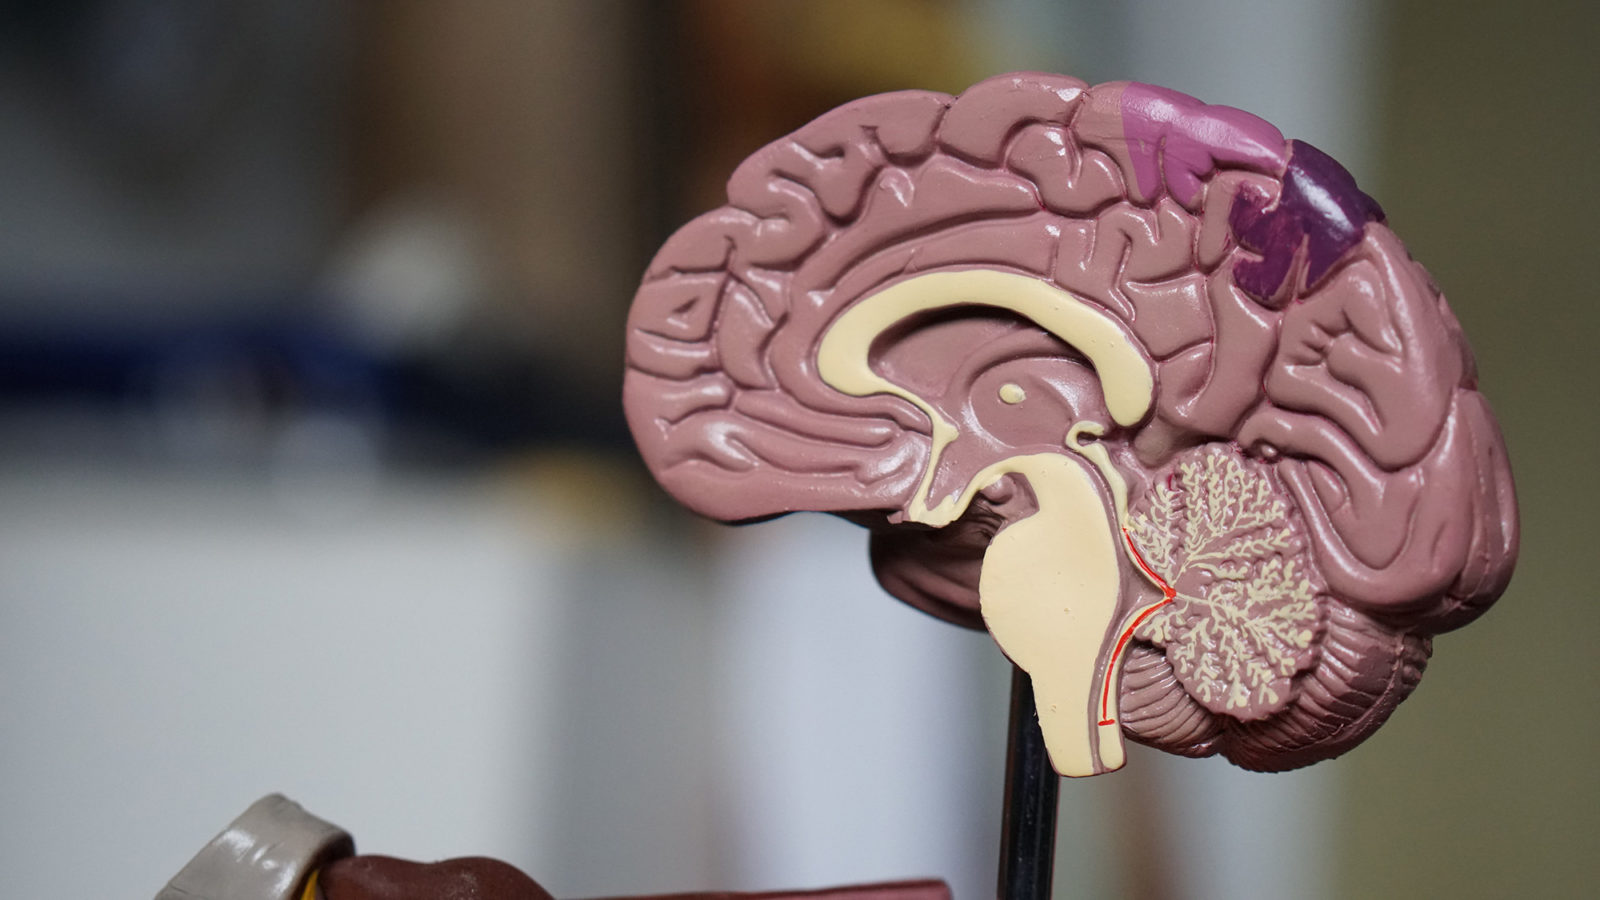 Model showing interior of brain used for medical purposes